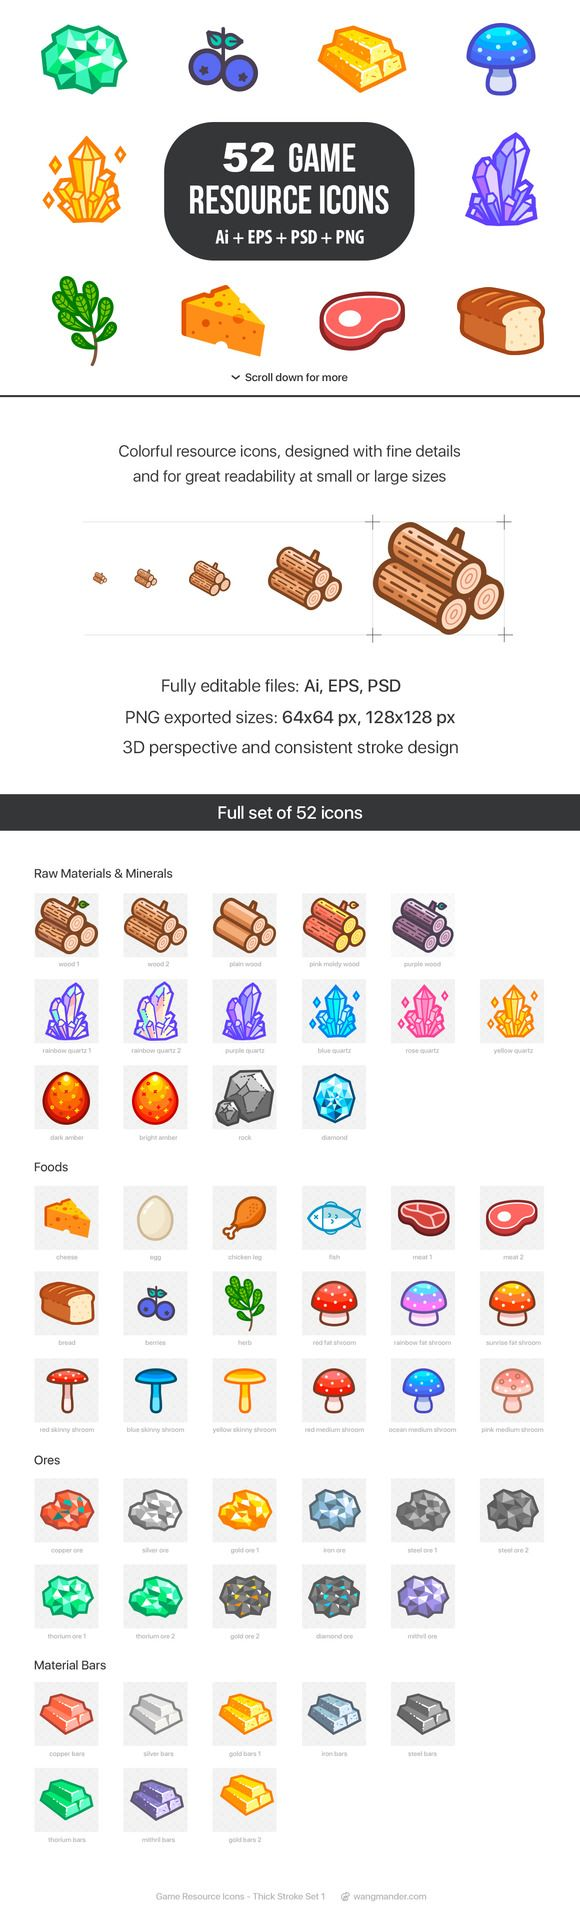 Game Resource Icons by wangmander on @creativemarket